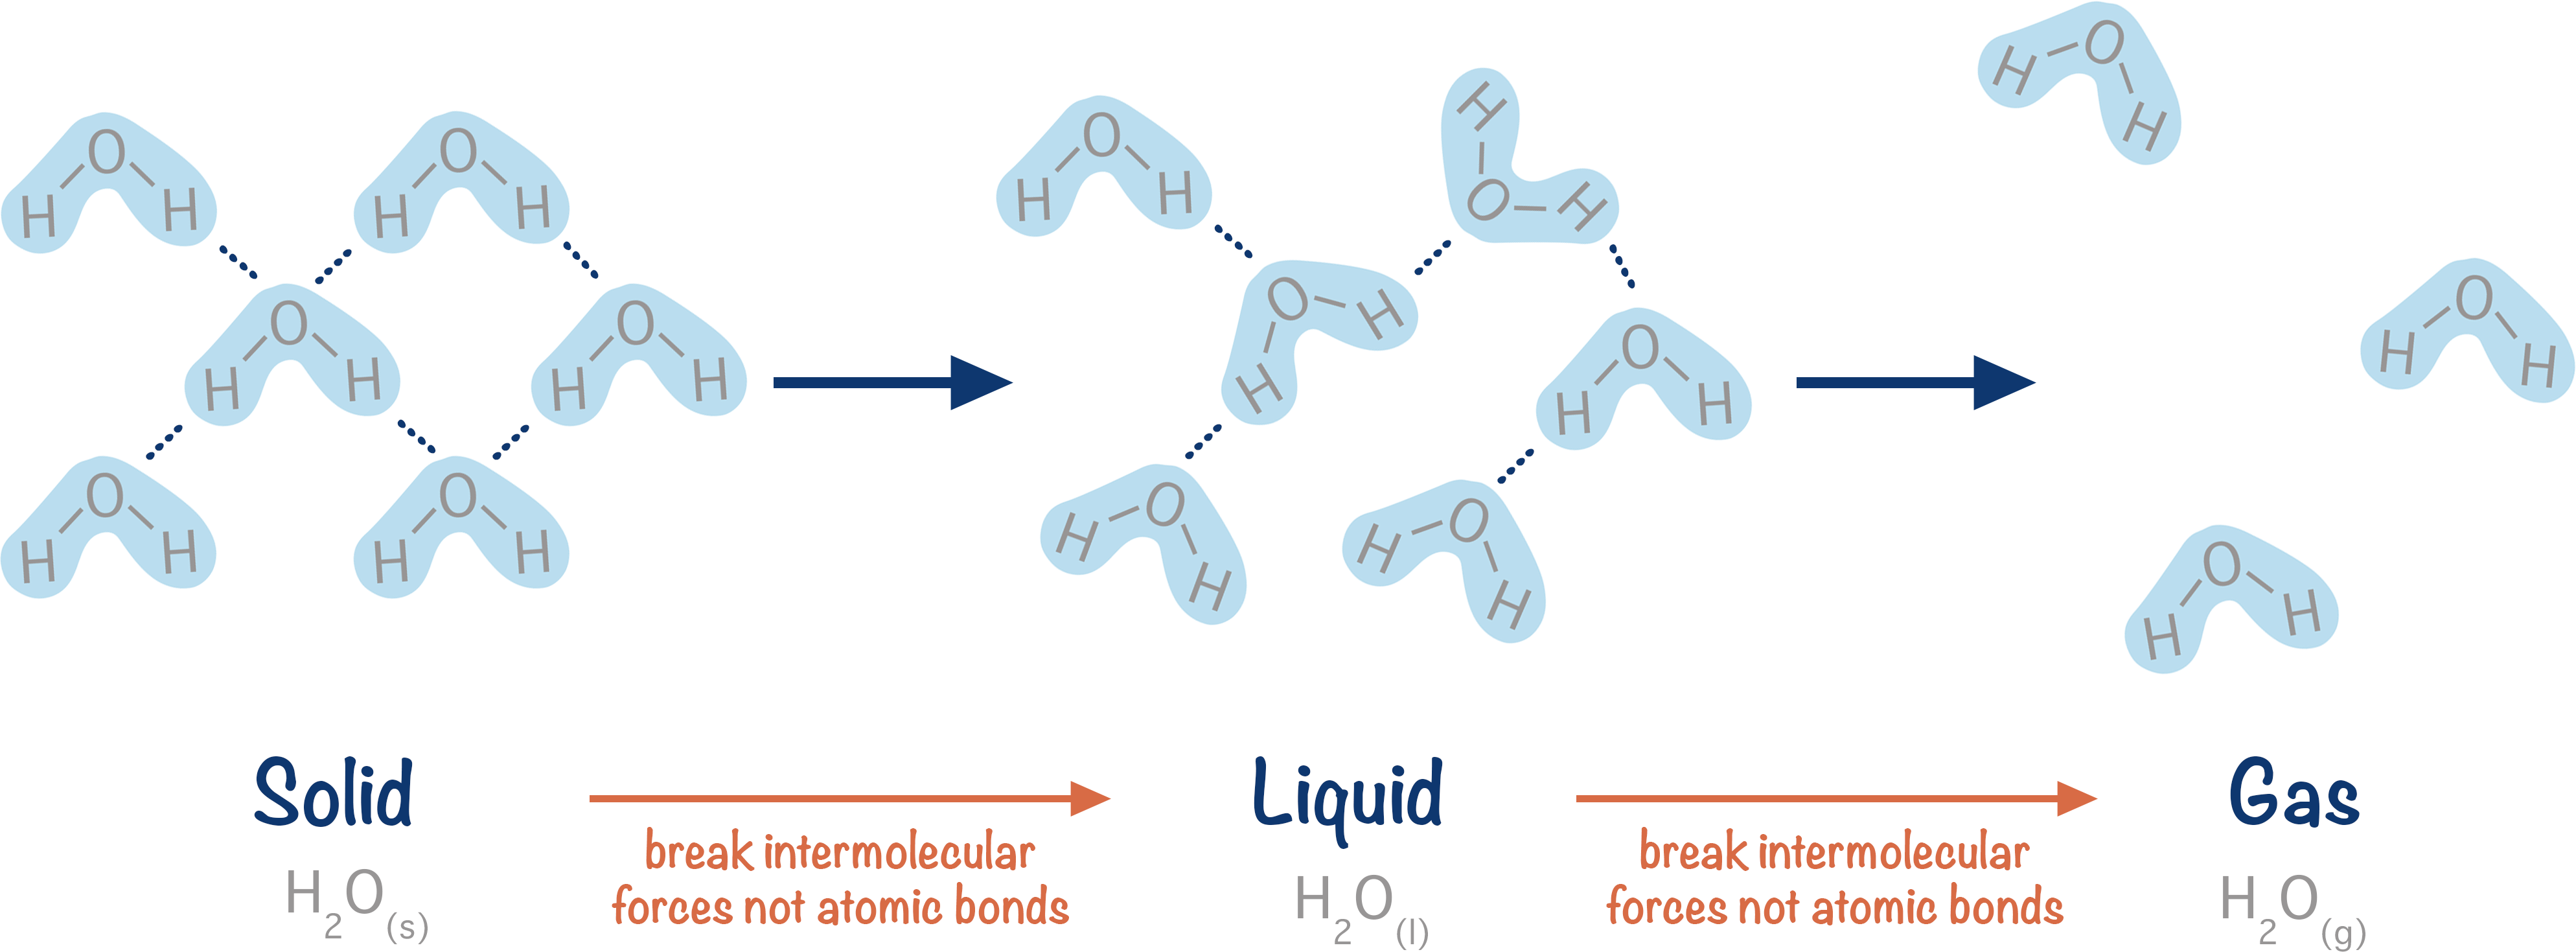 changing of intermolecular forces when water changes state